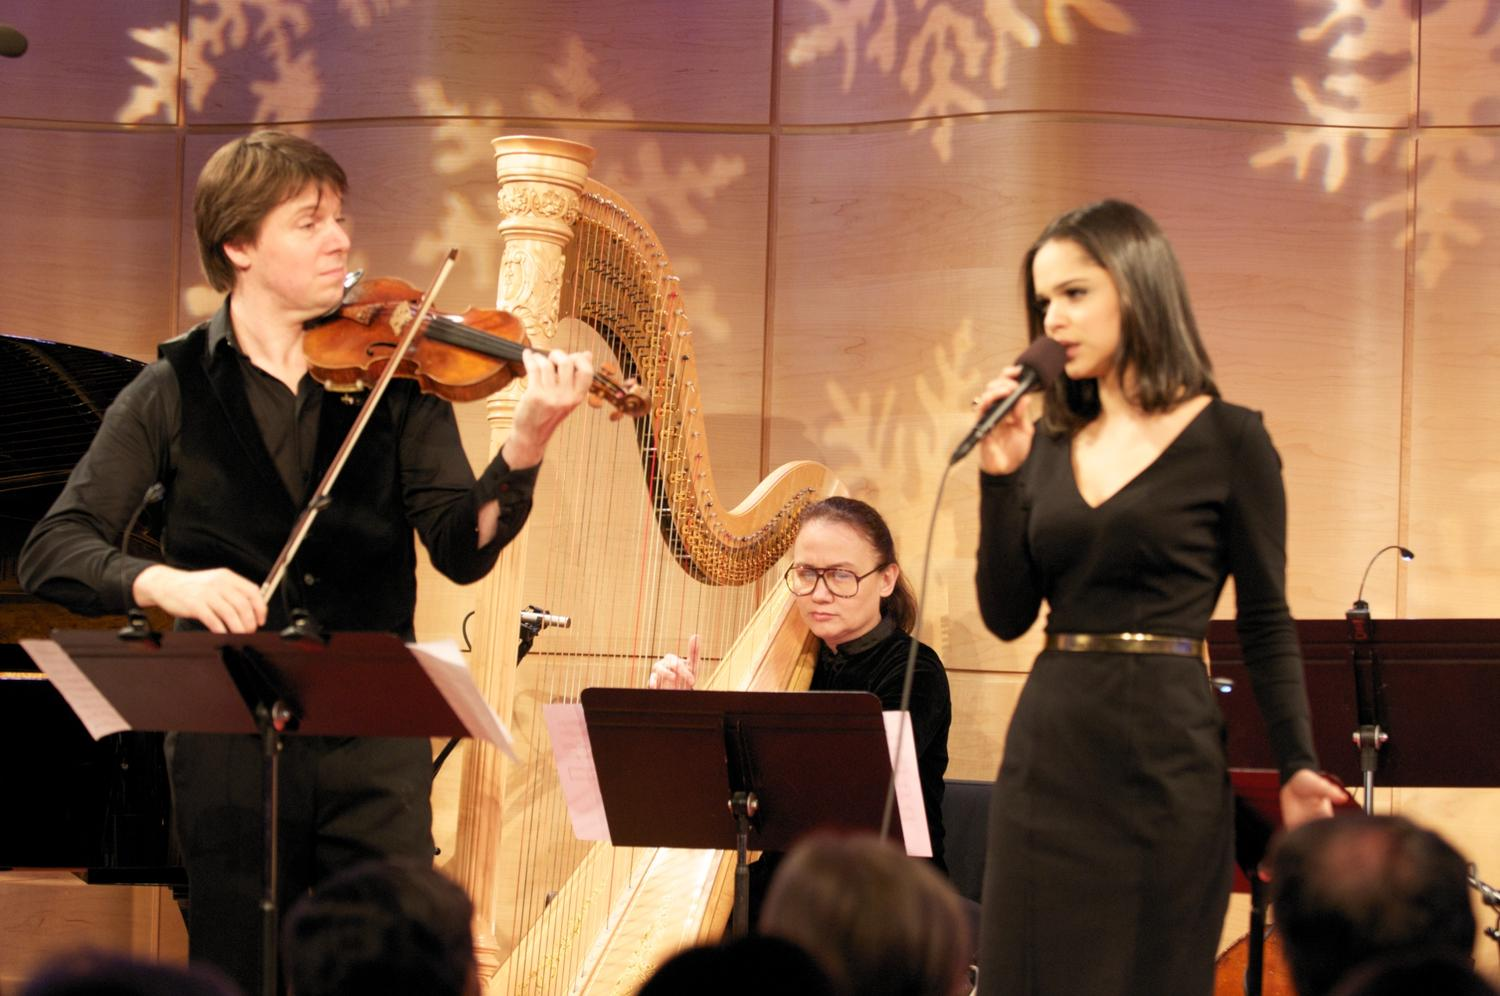 Musical Gifts with Joshua Bell and Friends